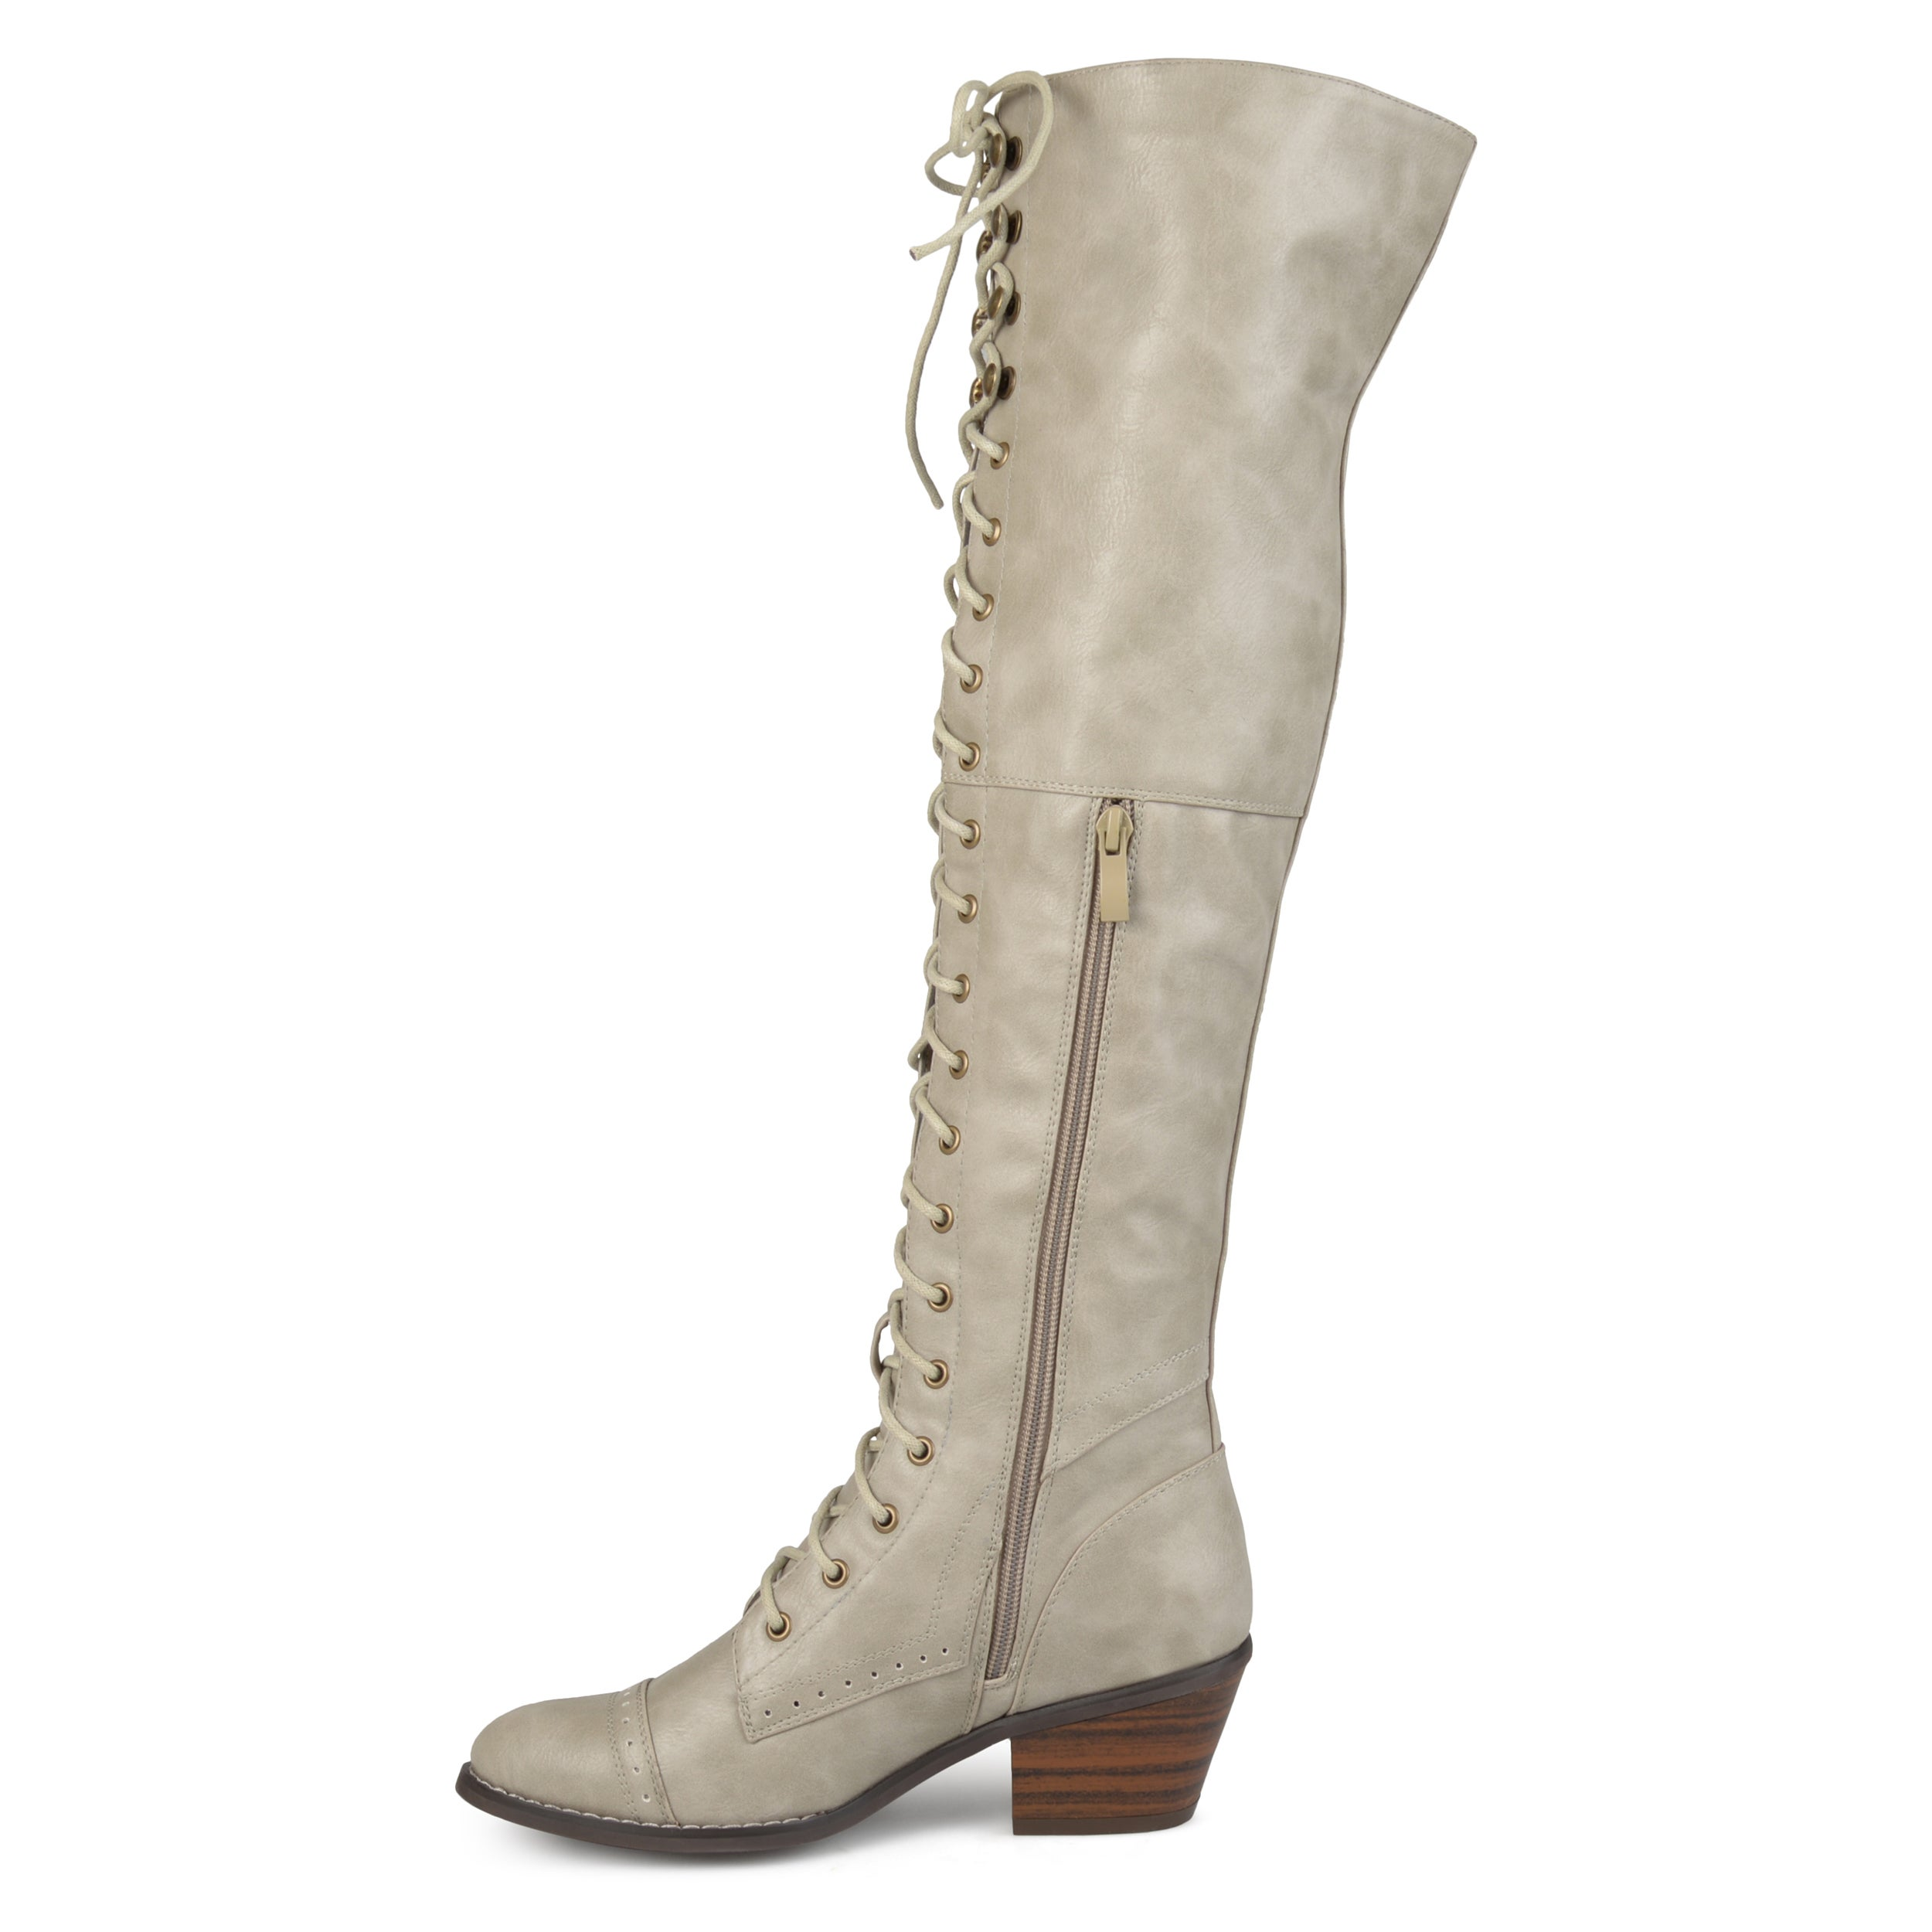 1ffd10a909f Shop Journee Collection Women s  Bazel  Regular and Wide Calf Brogue Lace-up  Over-the-knee Boots - Free Shipping Today - Overstock - 17351910